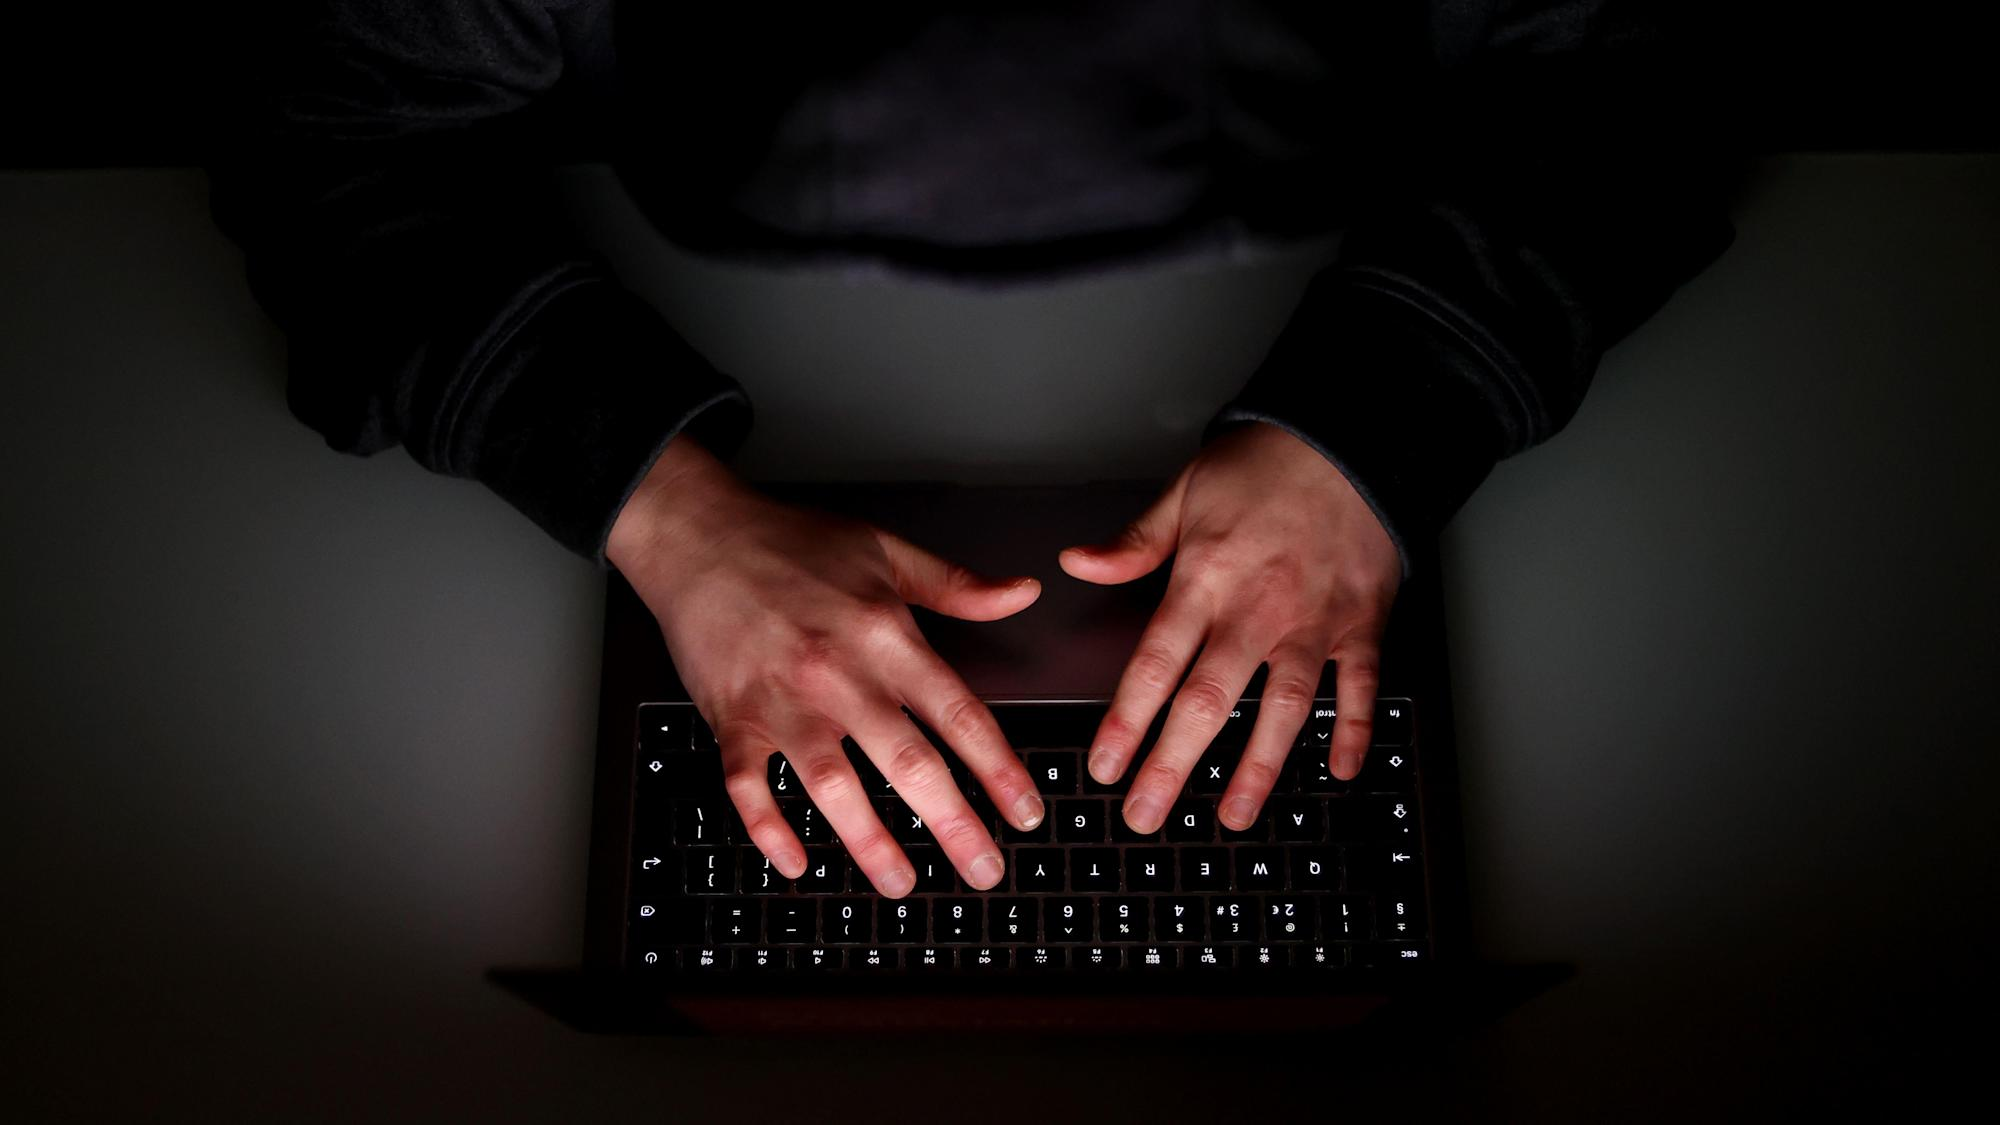 Free tool offering personalised cyber security tips launched by Government